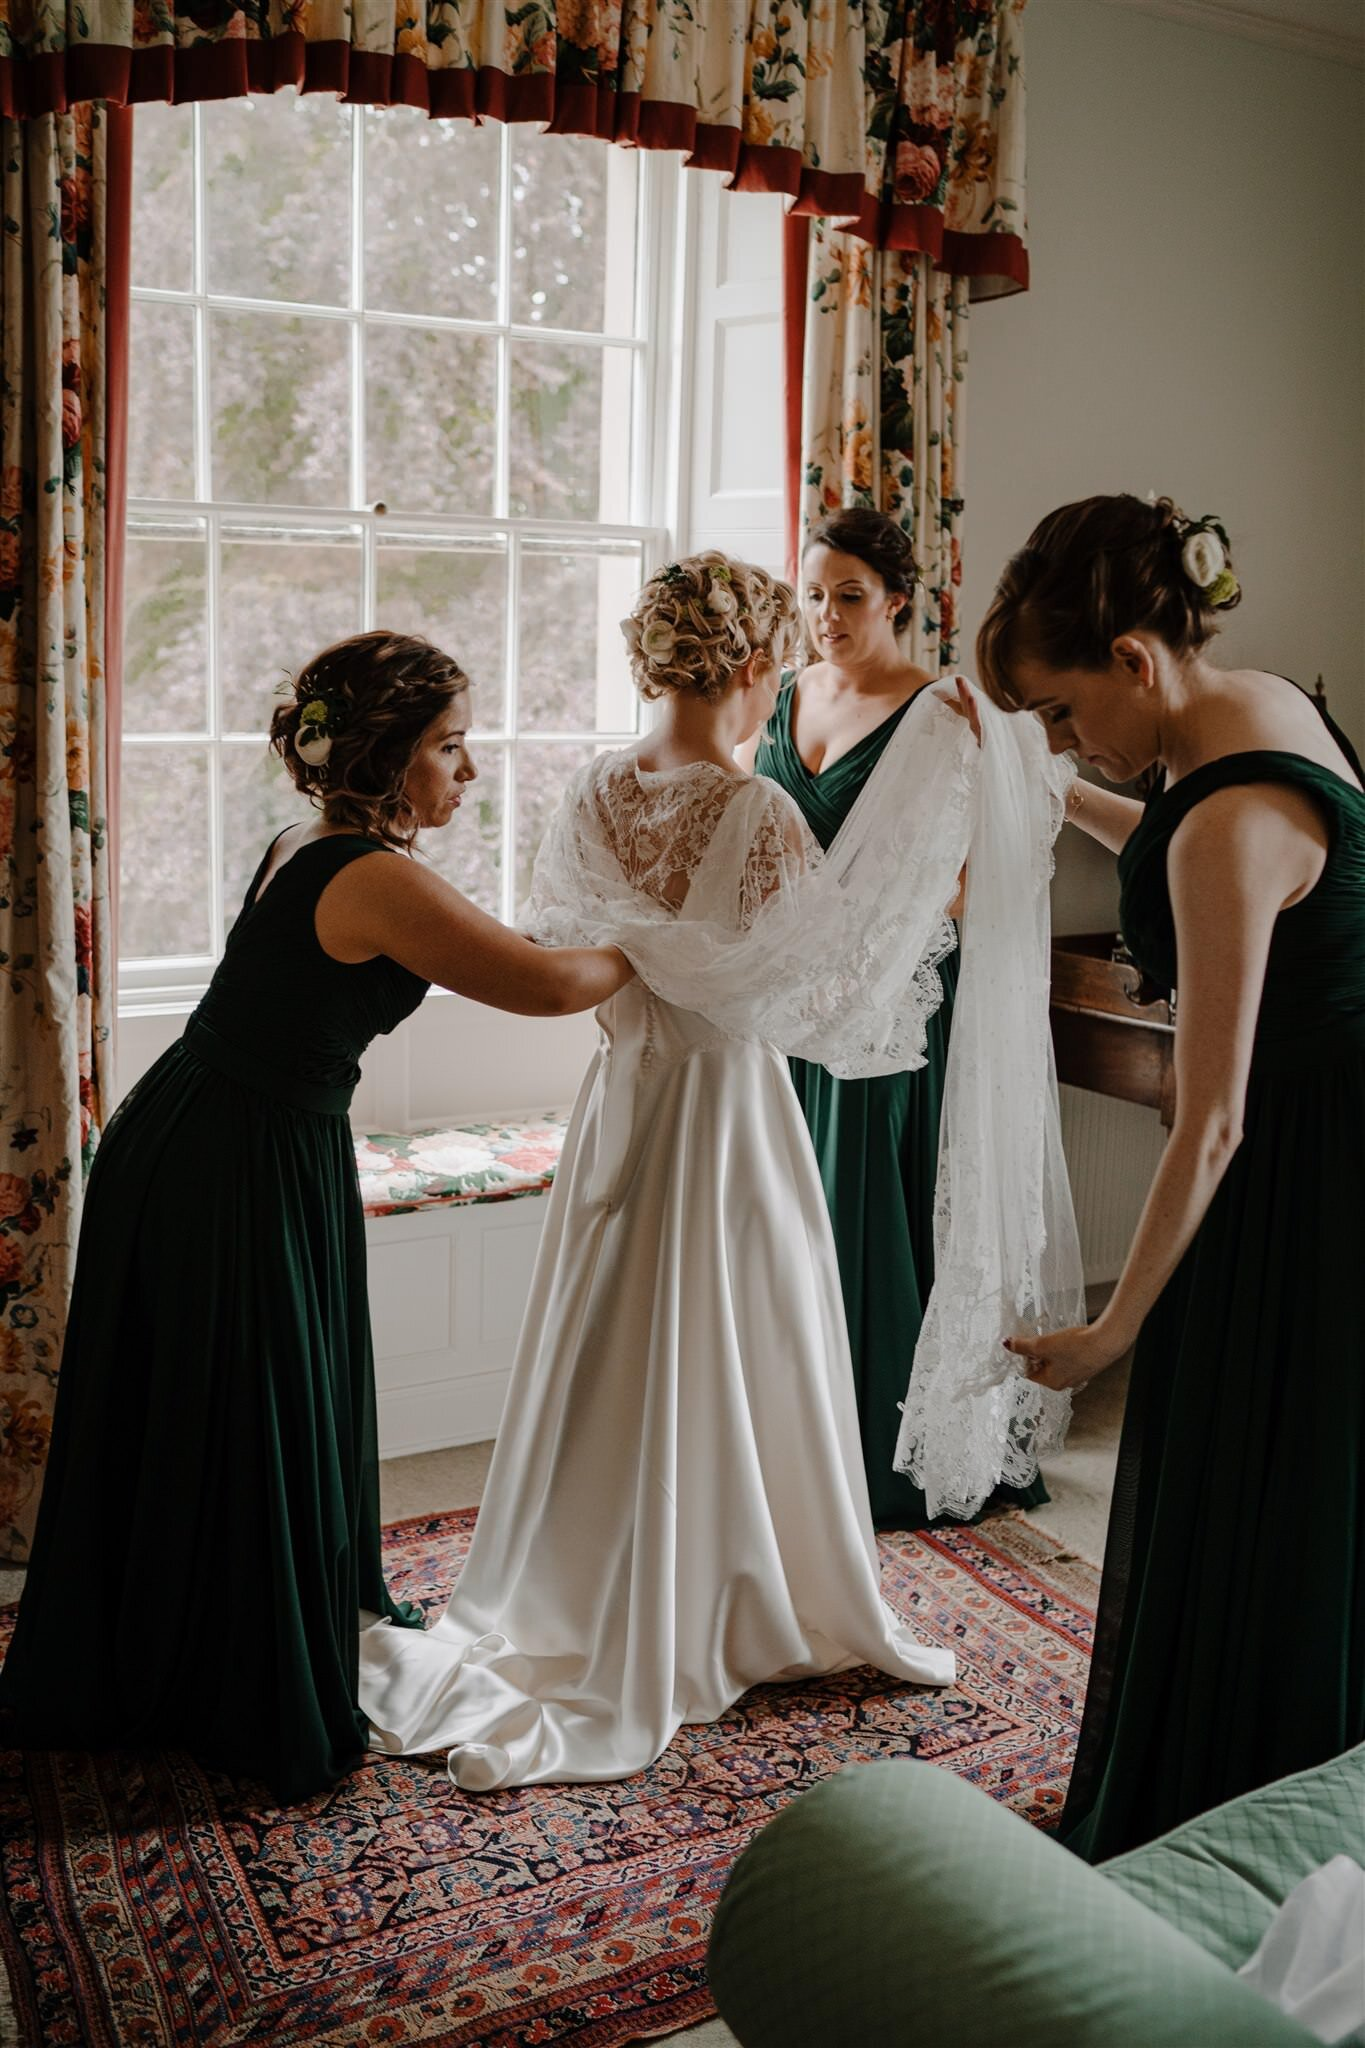 Bridesmaids help bride weddimg dress custom lace Alison Jayne couture